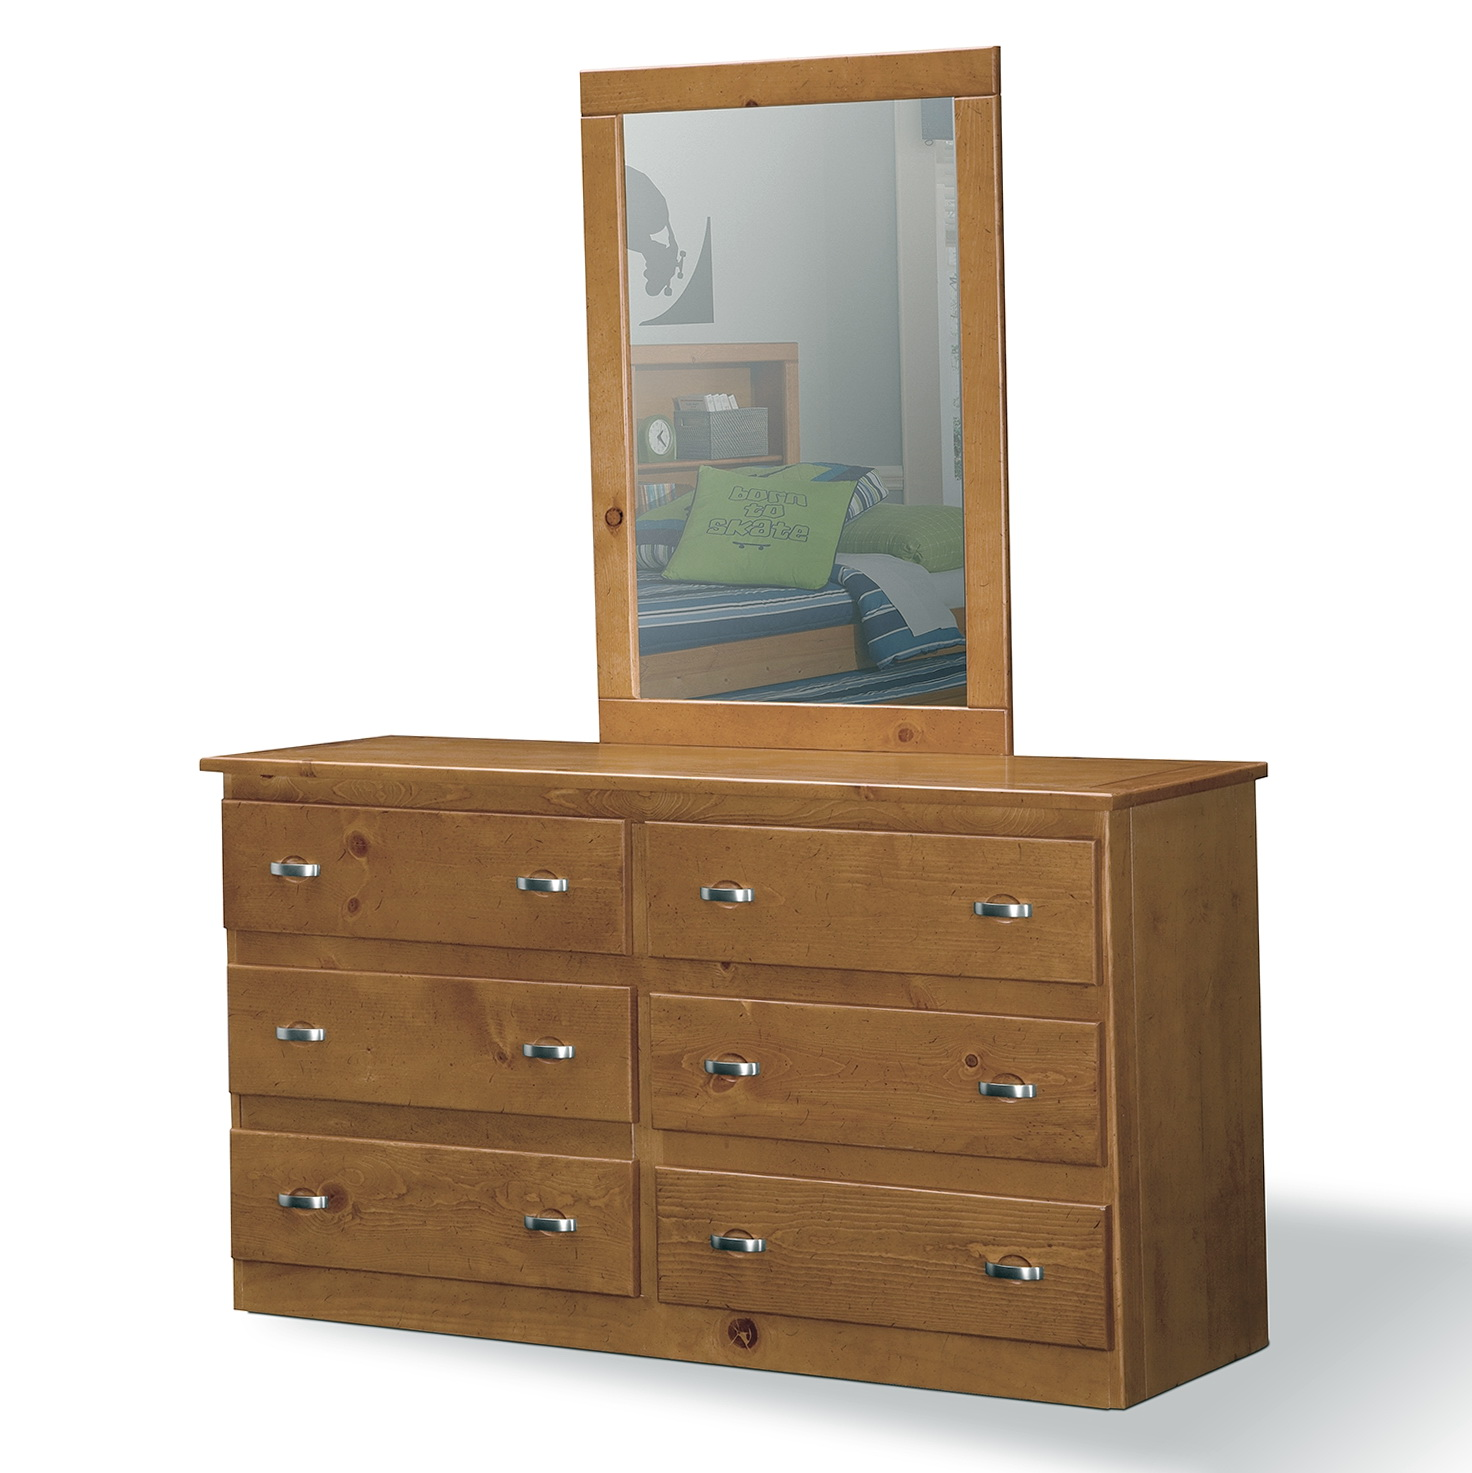 dressers for sale awesome dressers on sale on parallels h sphere dressers on dressers for. Black Bedroom Furniture Sets. Home Design Ideas